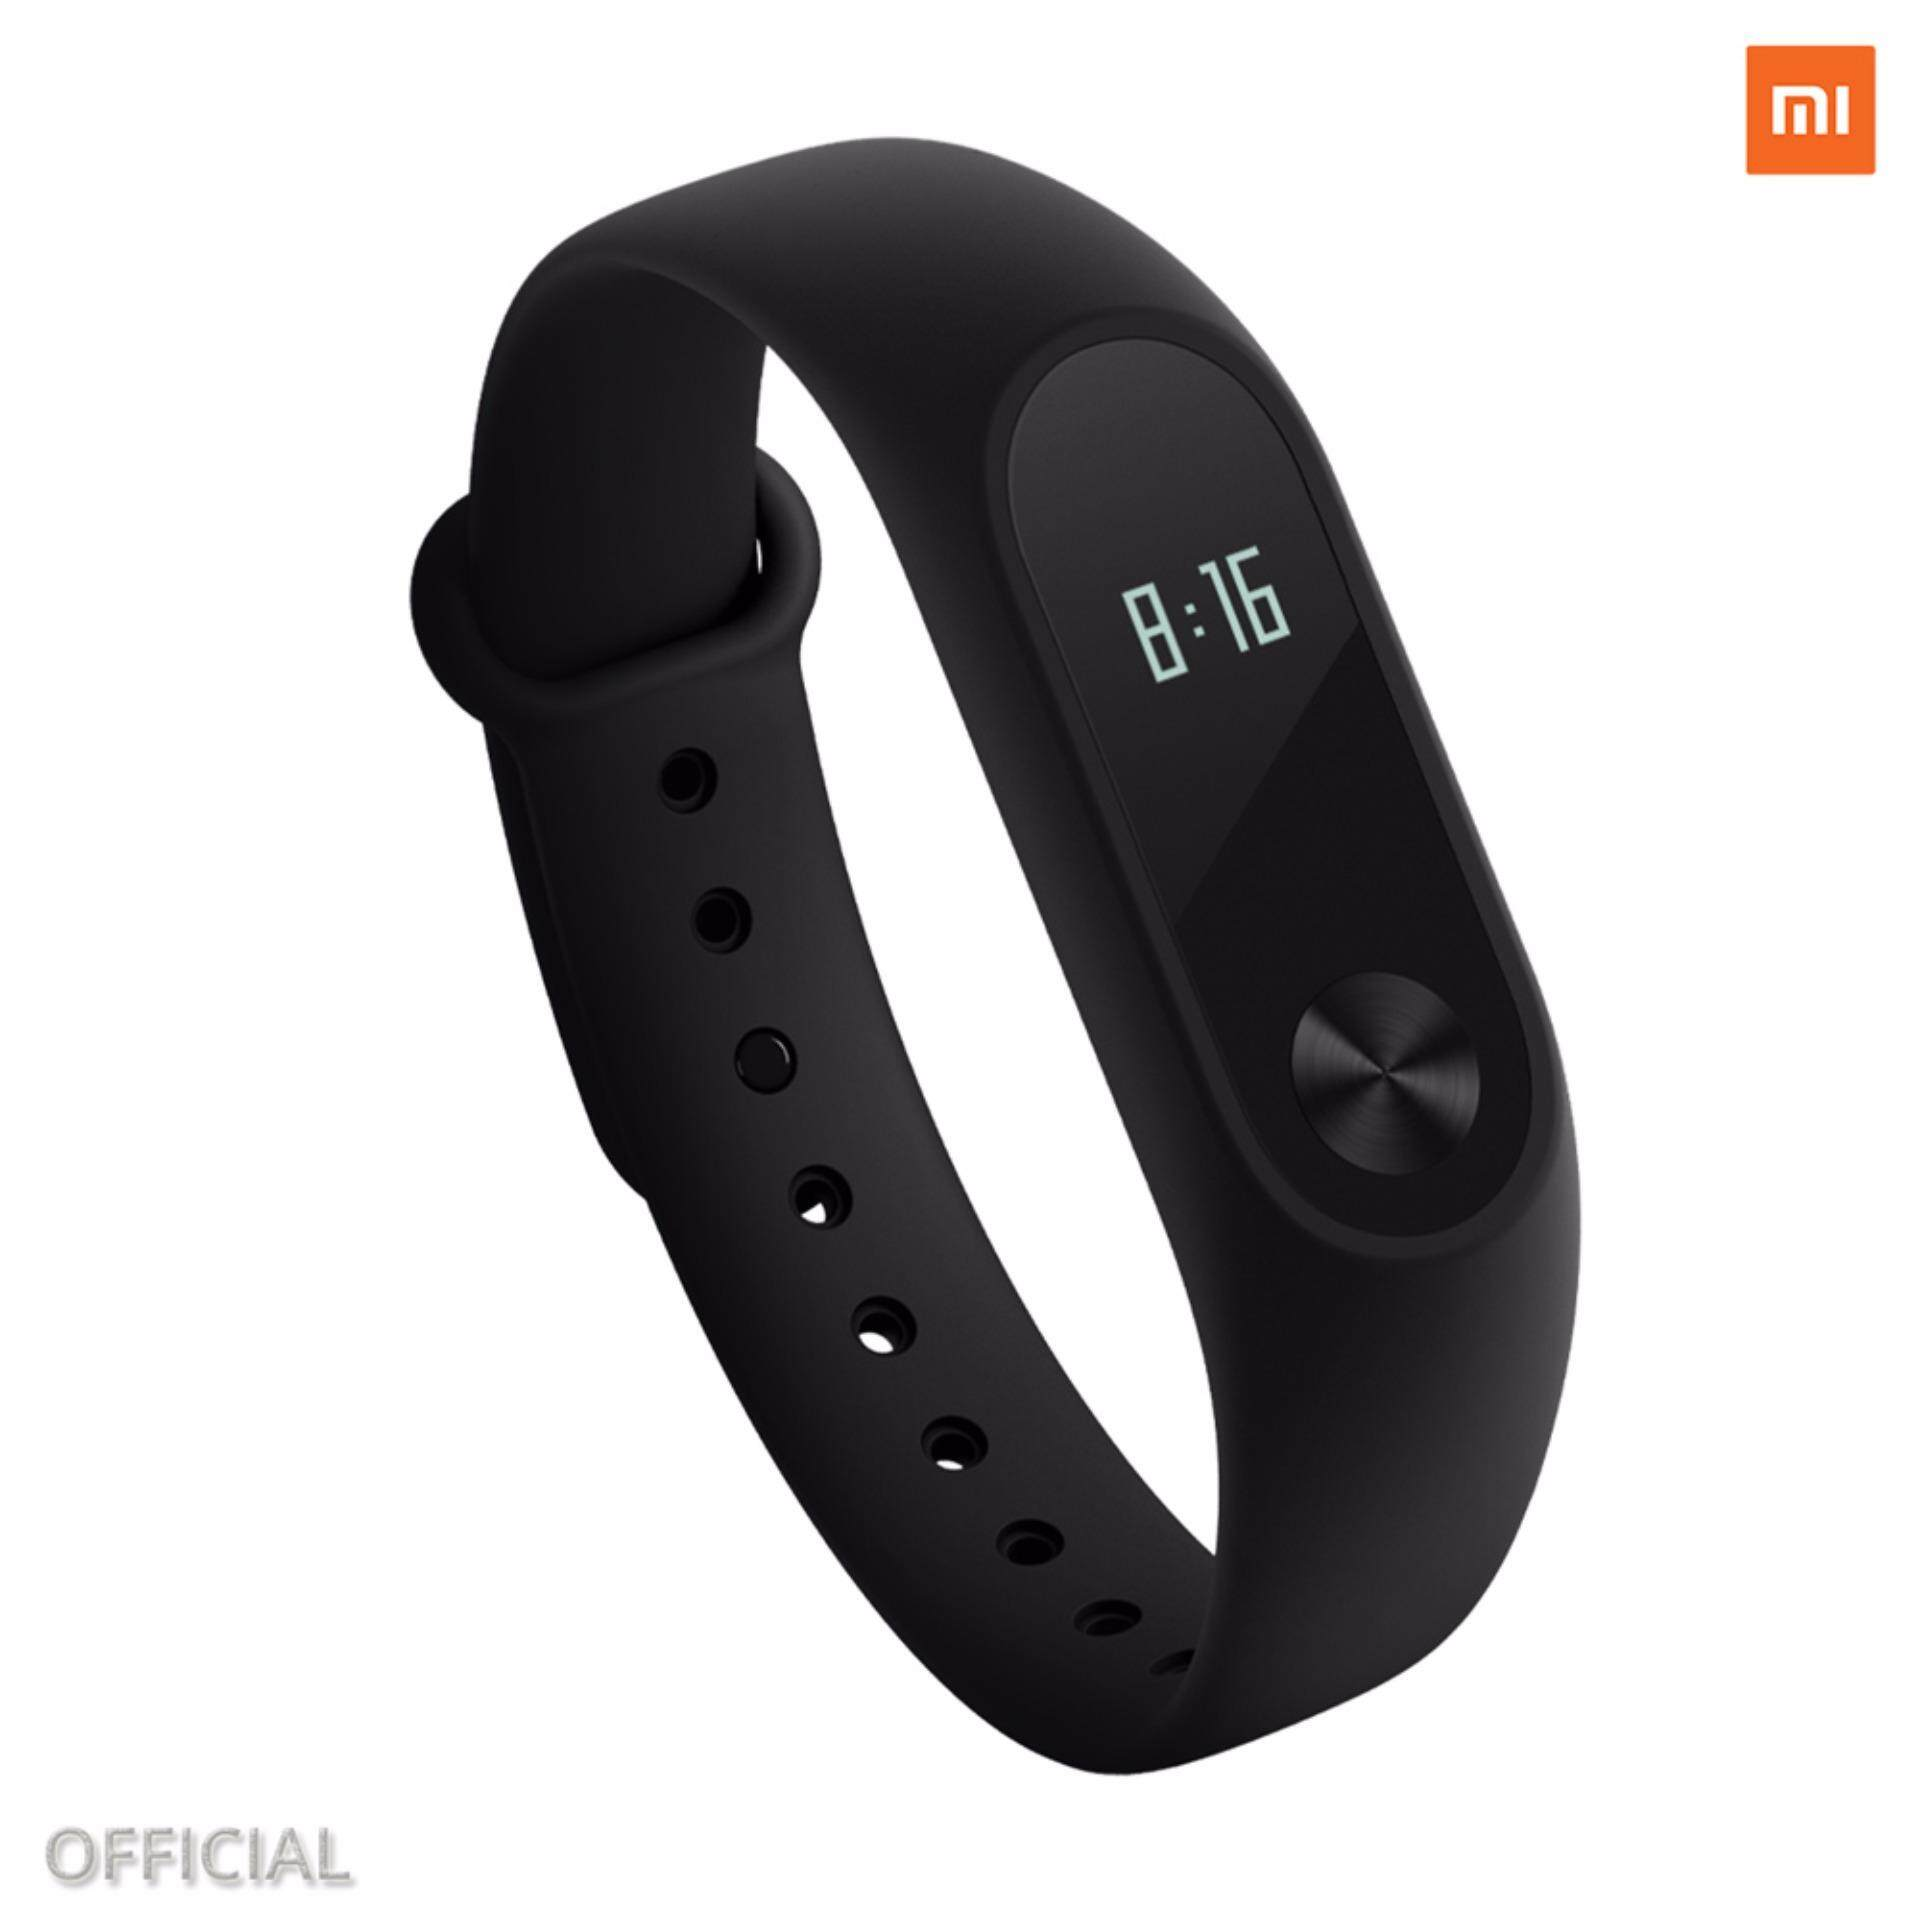 wearable activity bigchinamall plus slim watches smart bracelet pedometer fitbit waterproof watch rate tag tracking tracker fitness hr heart product